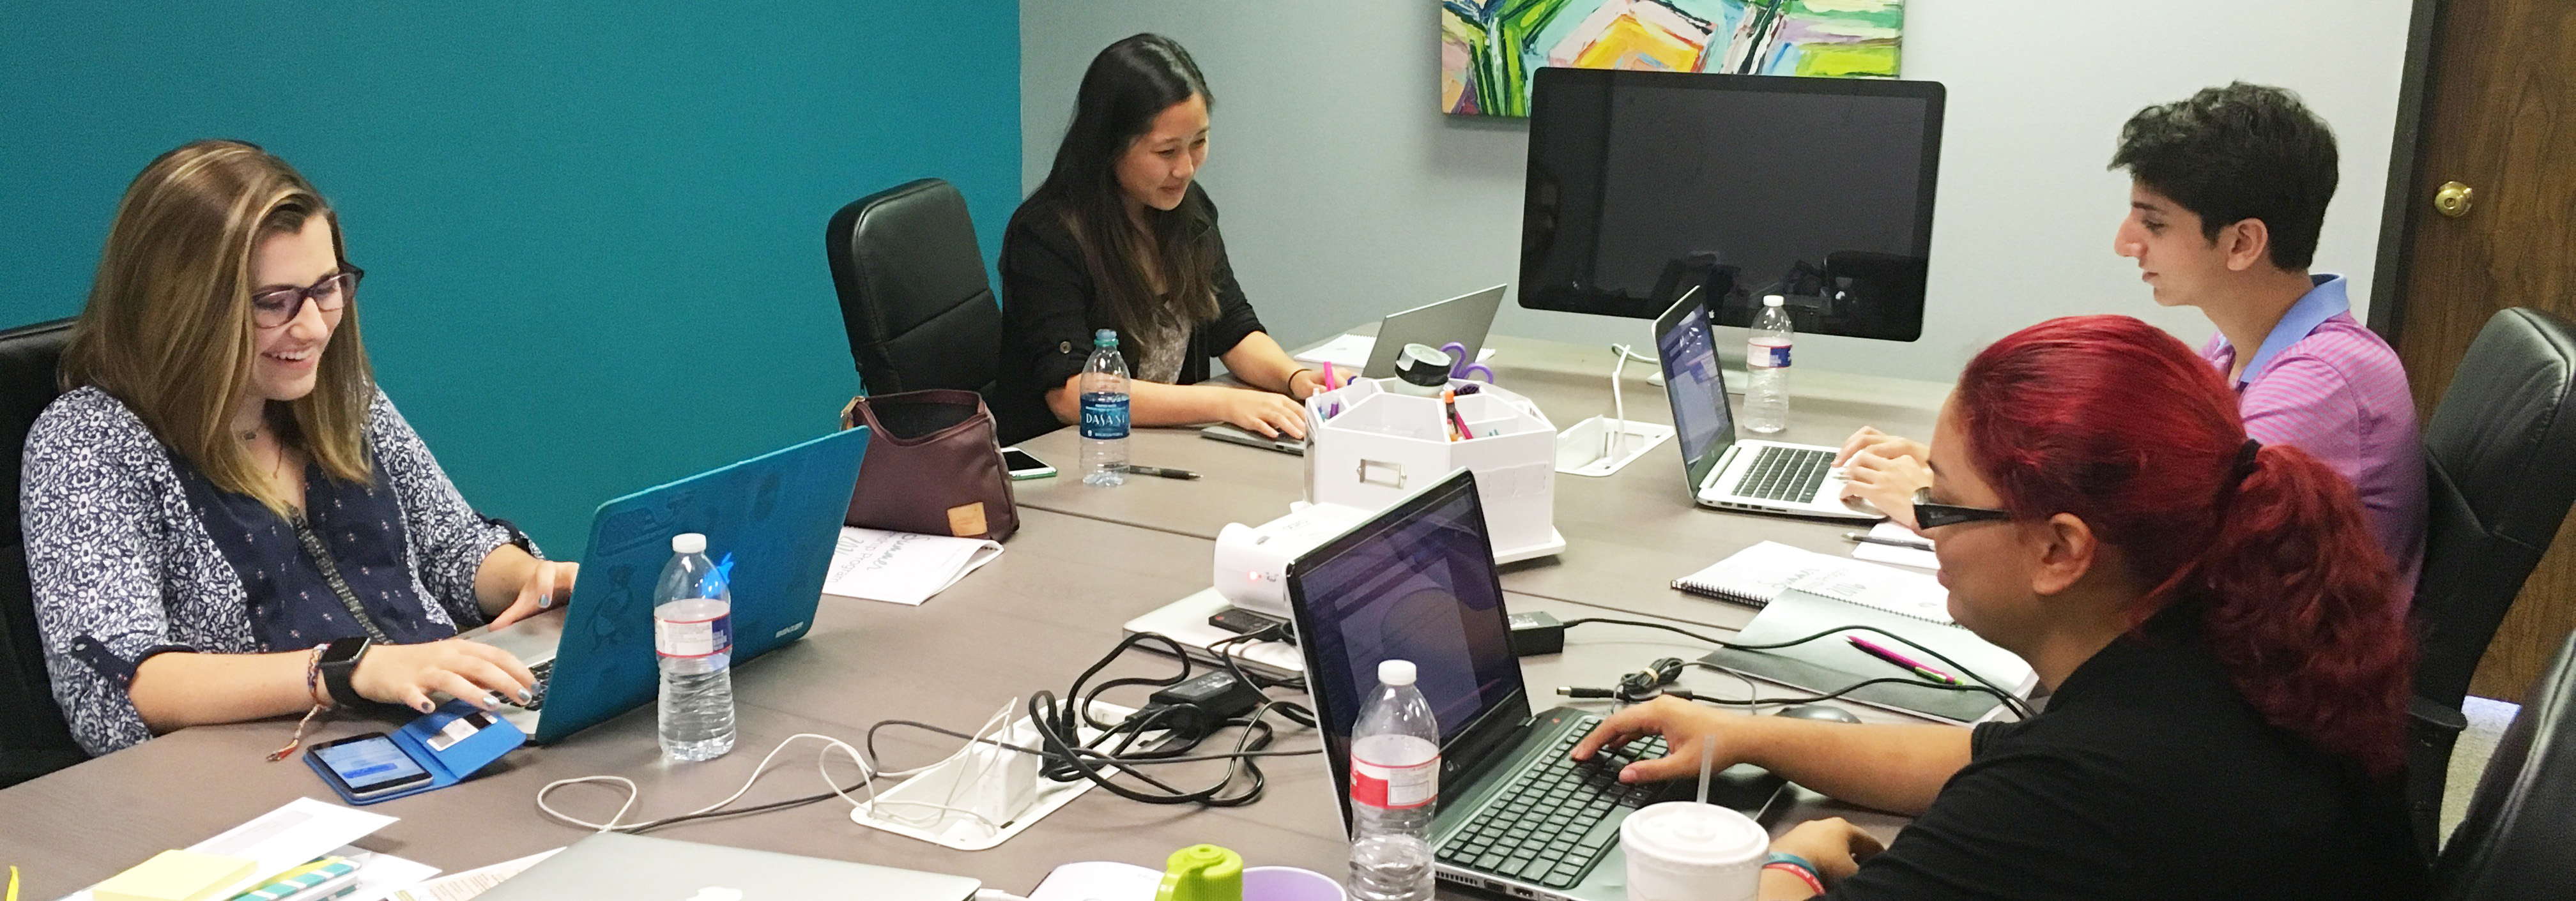 Interns Working on Project